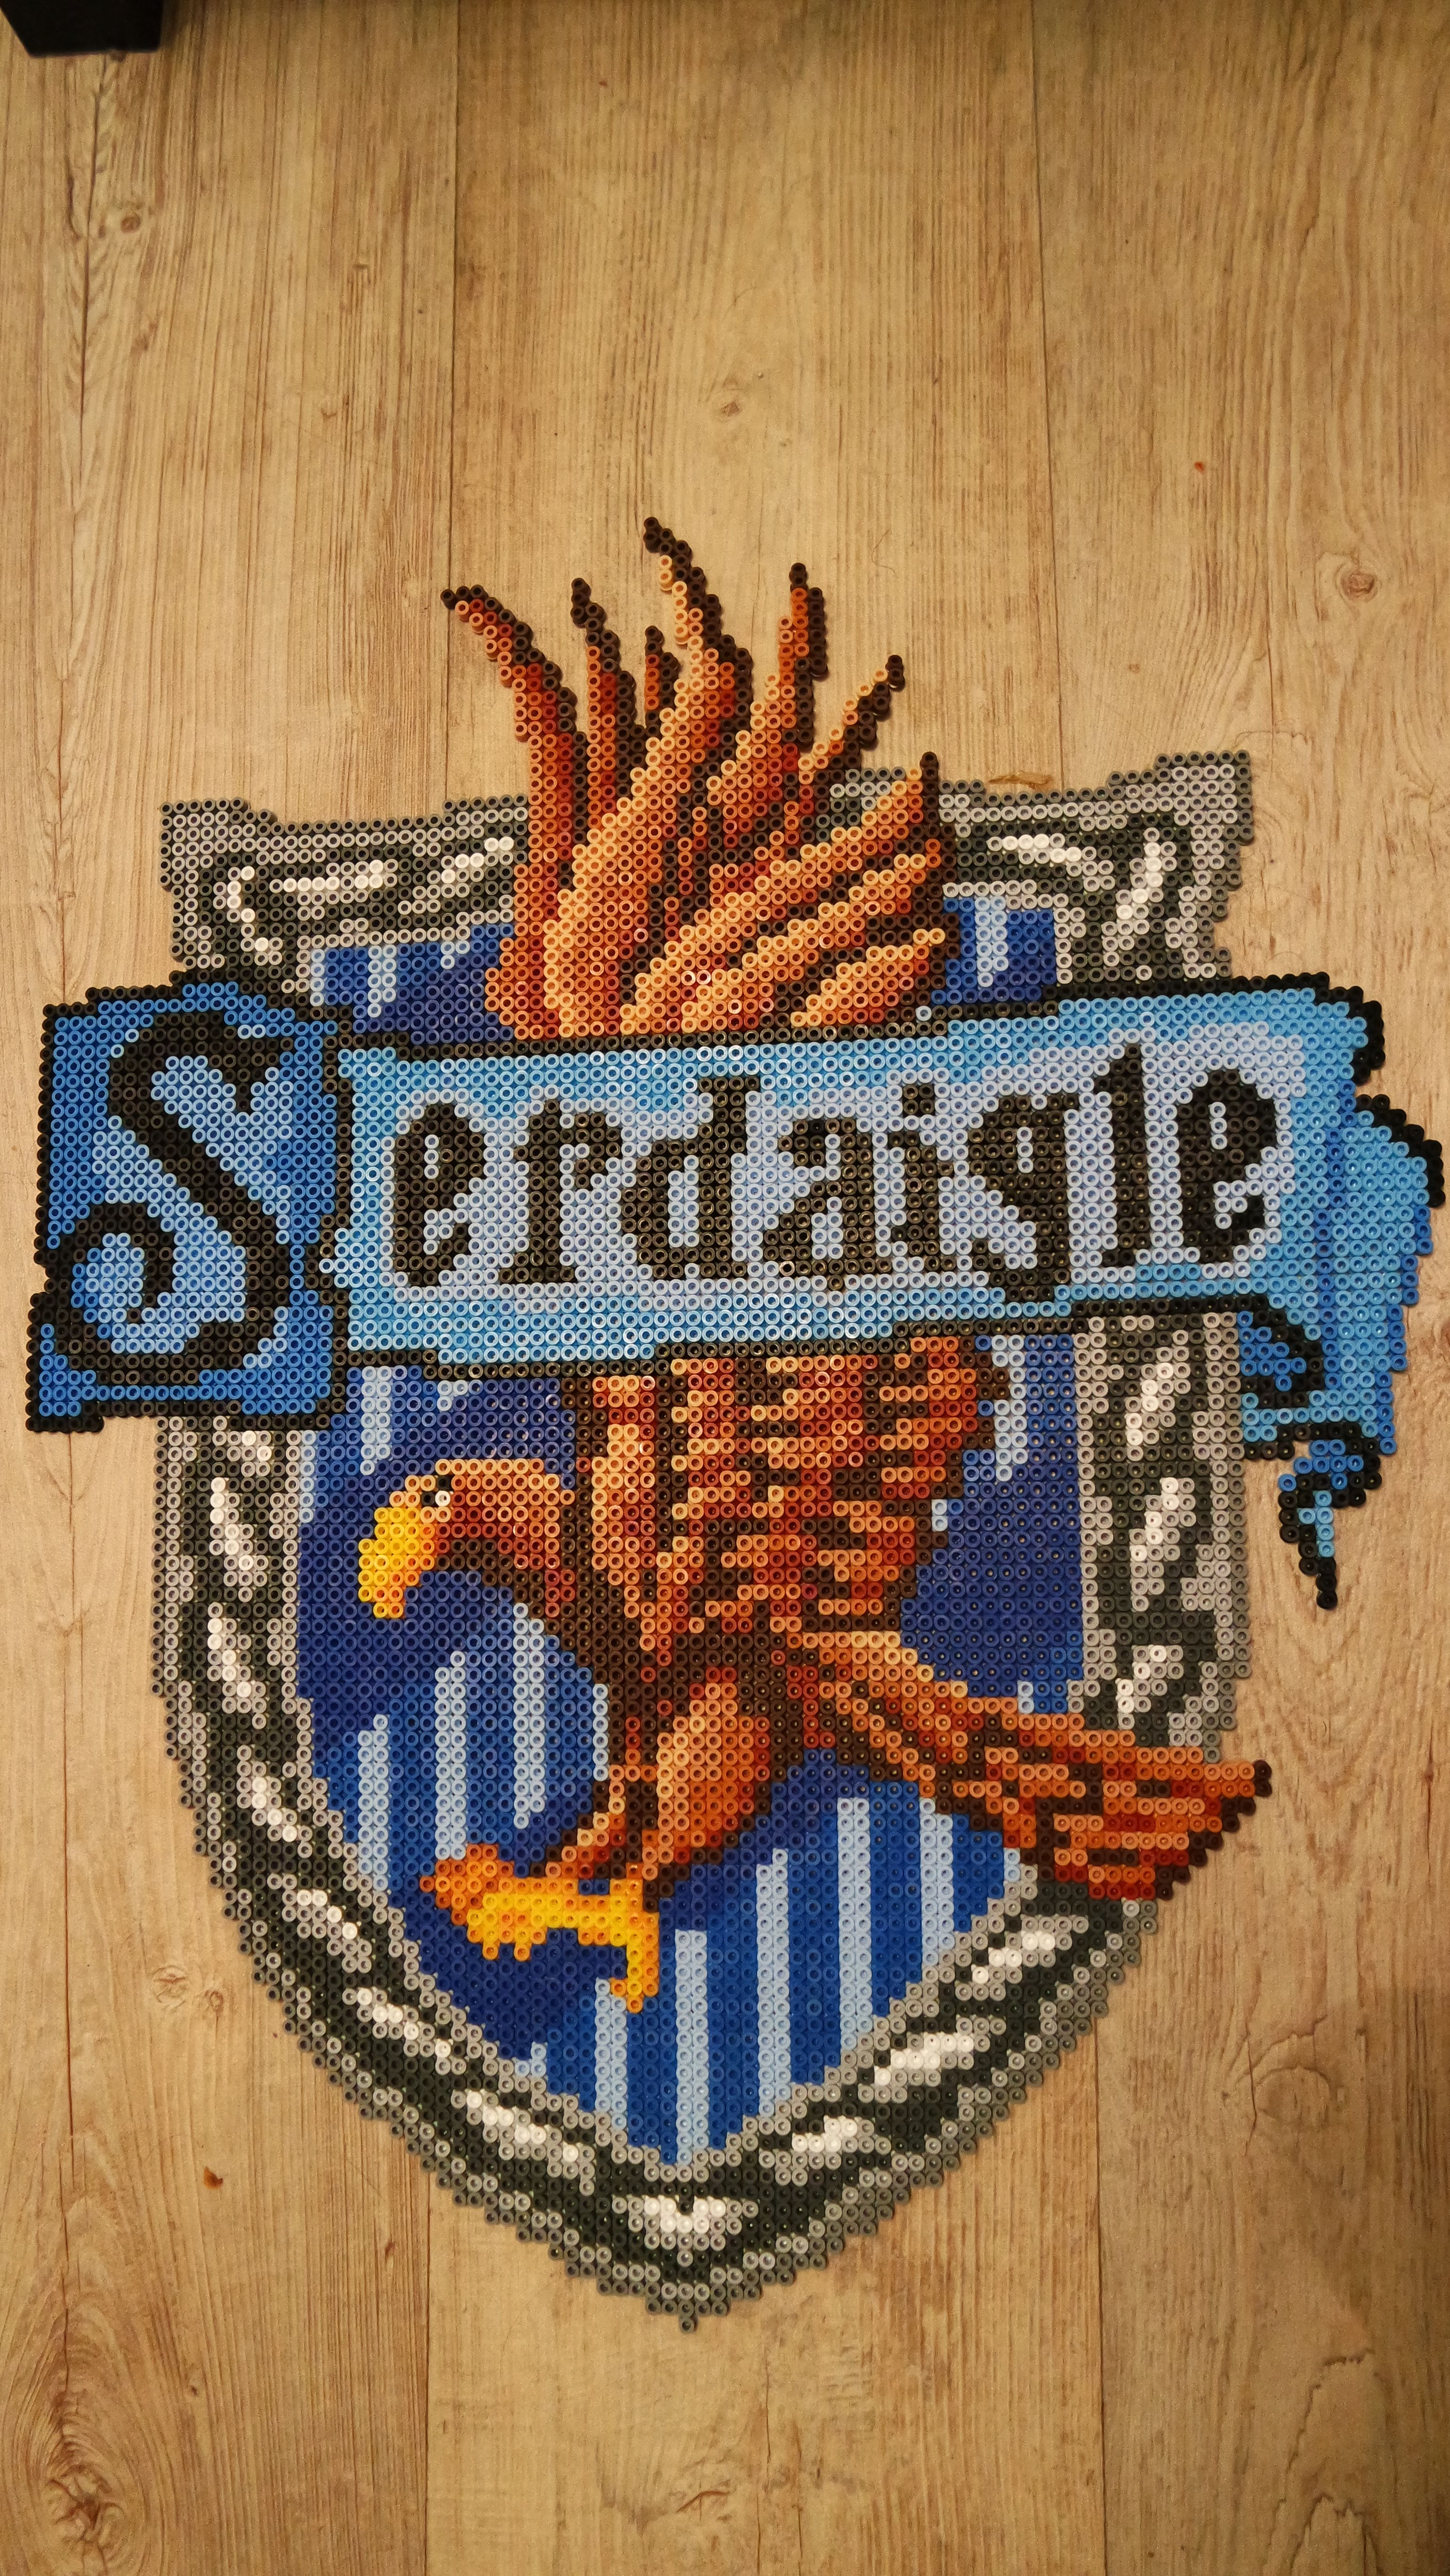 Blason de serdaigle ravenclaw 39 s crest harry potter perler beads by vicsene perler beads by - Harry potter blason ...